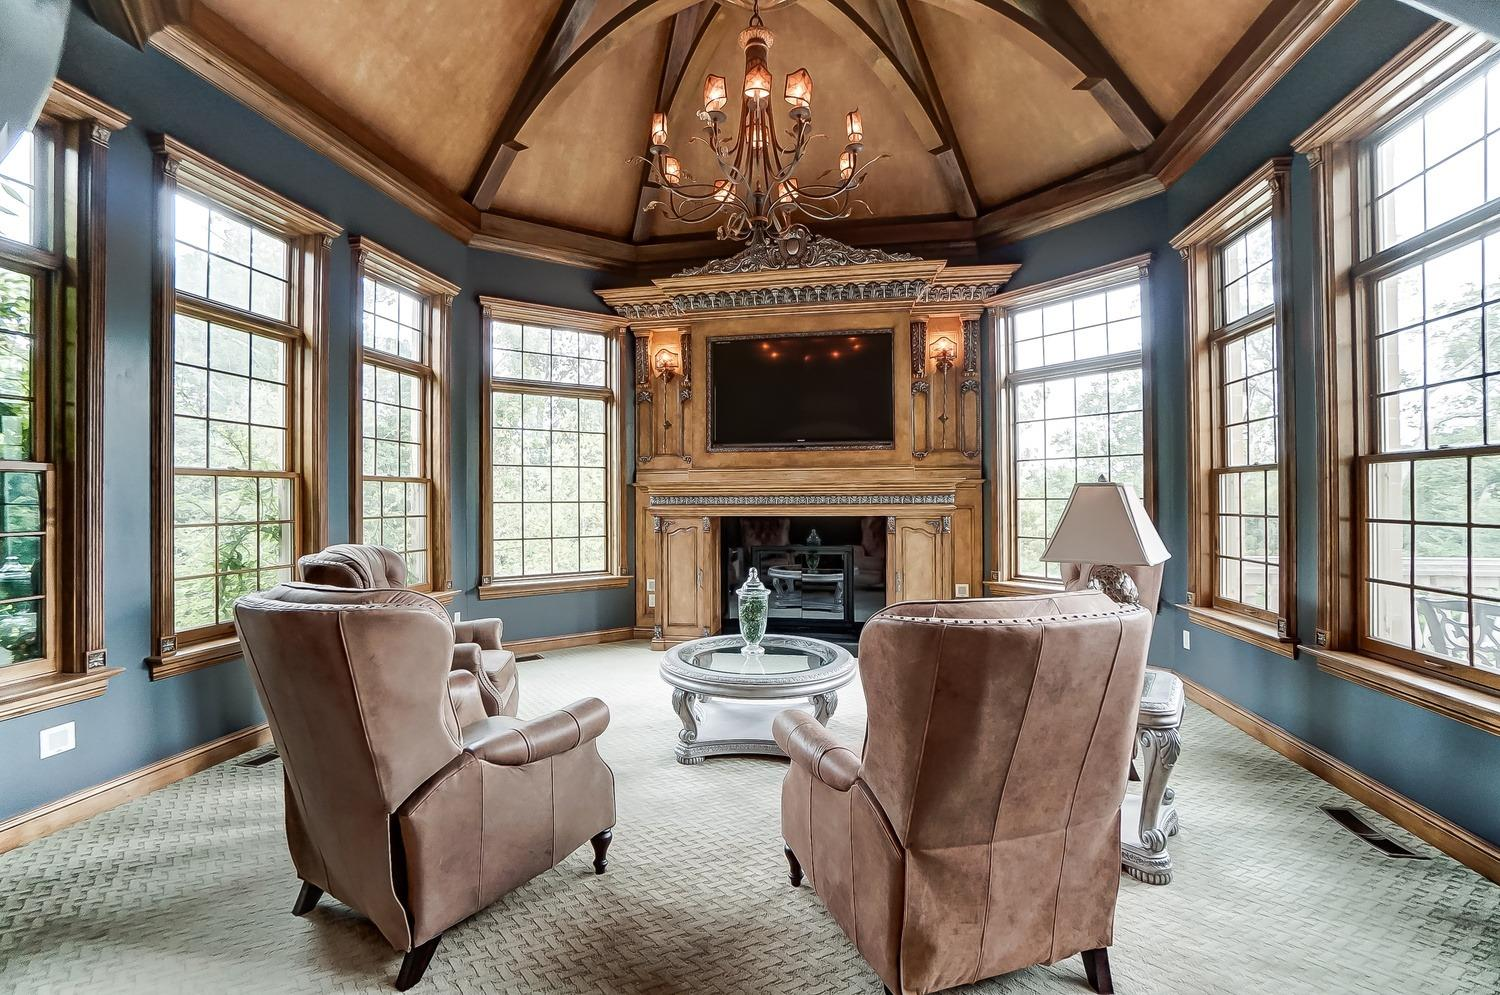 The hearth room includes an ornate fireplace with built-ins, an arched beamed ceiling and a large chandelier.